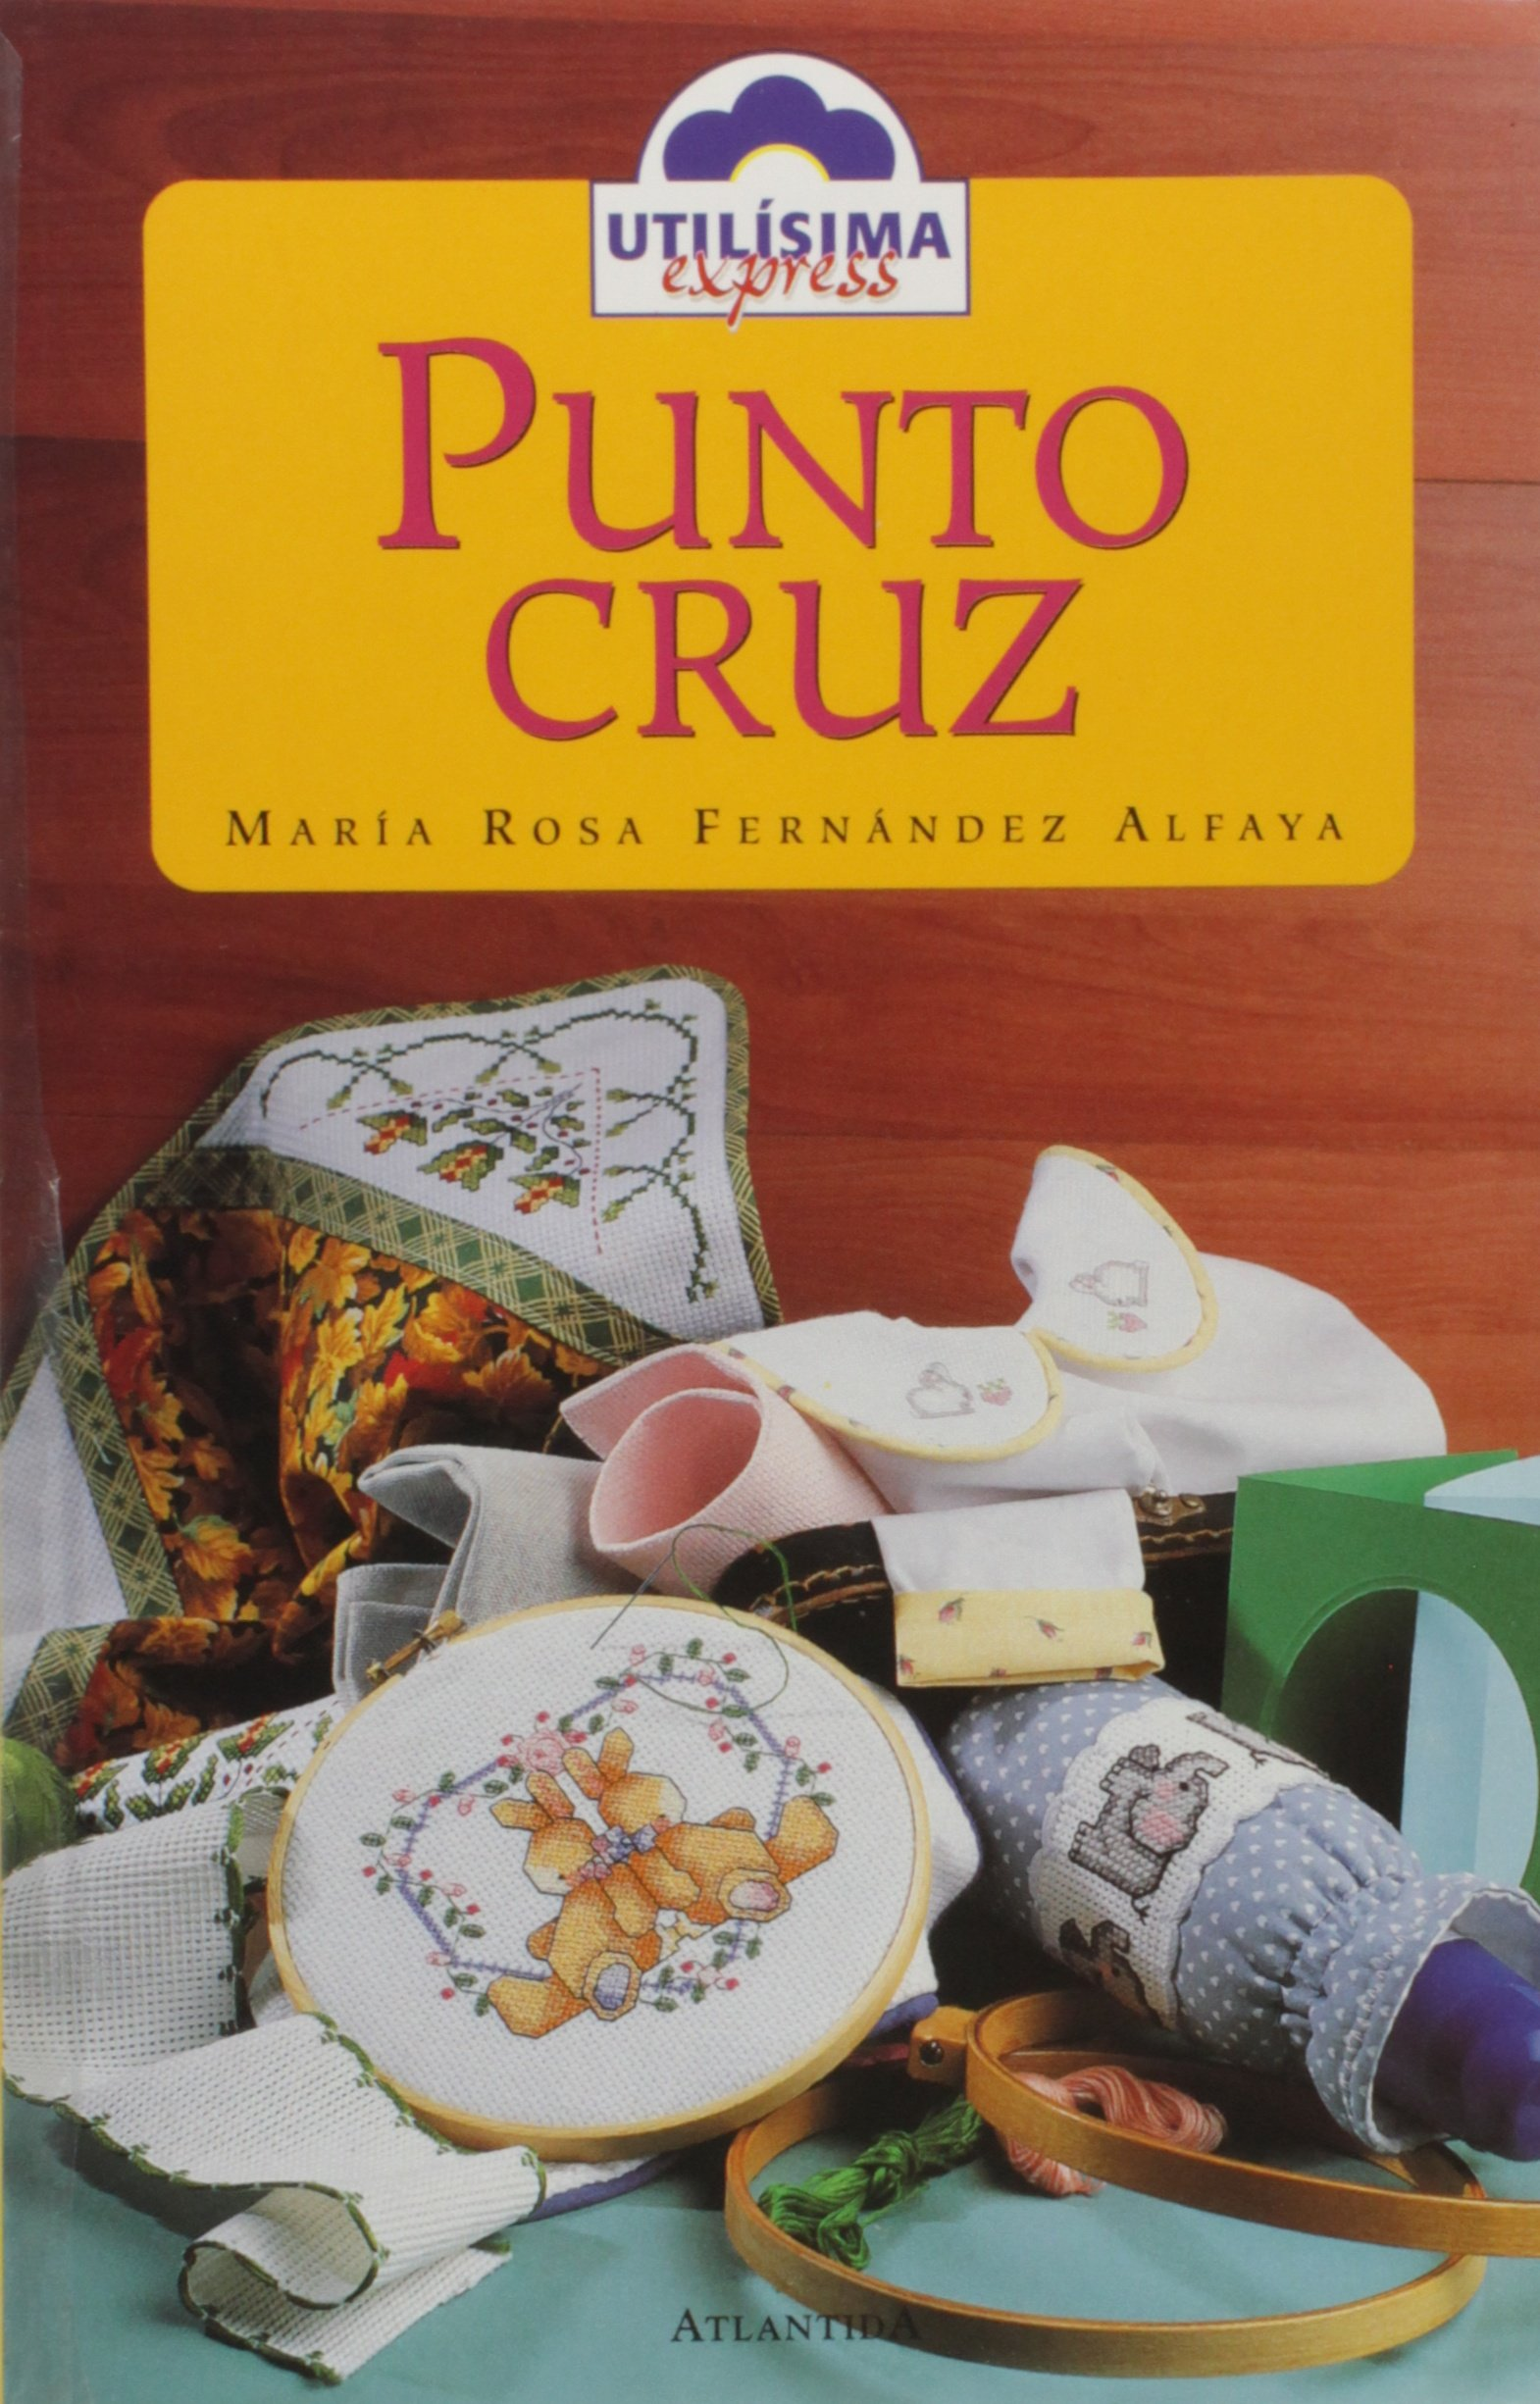 Punto cruz (Spanish) Paperback – July 31, 2000